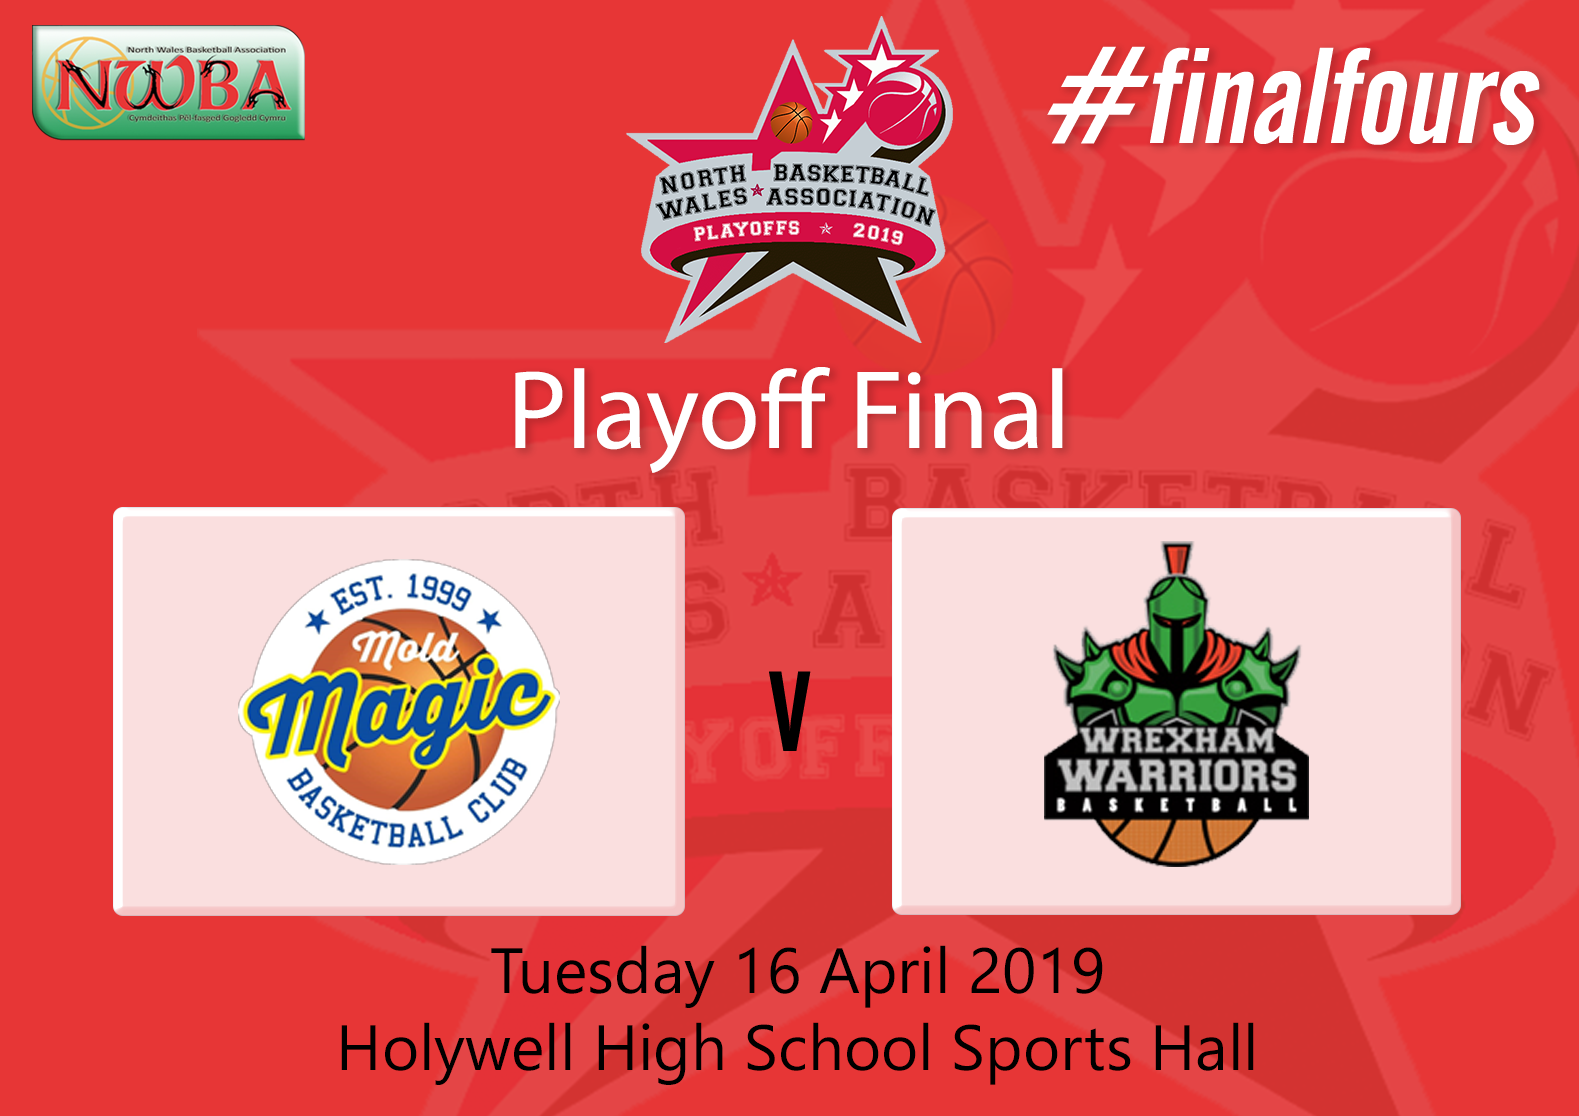 NWBA Senior Playoff Final 2019